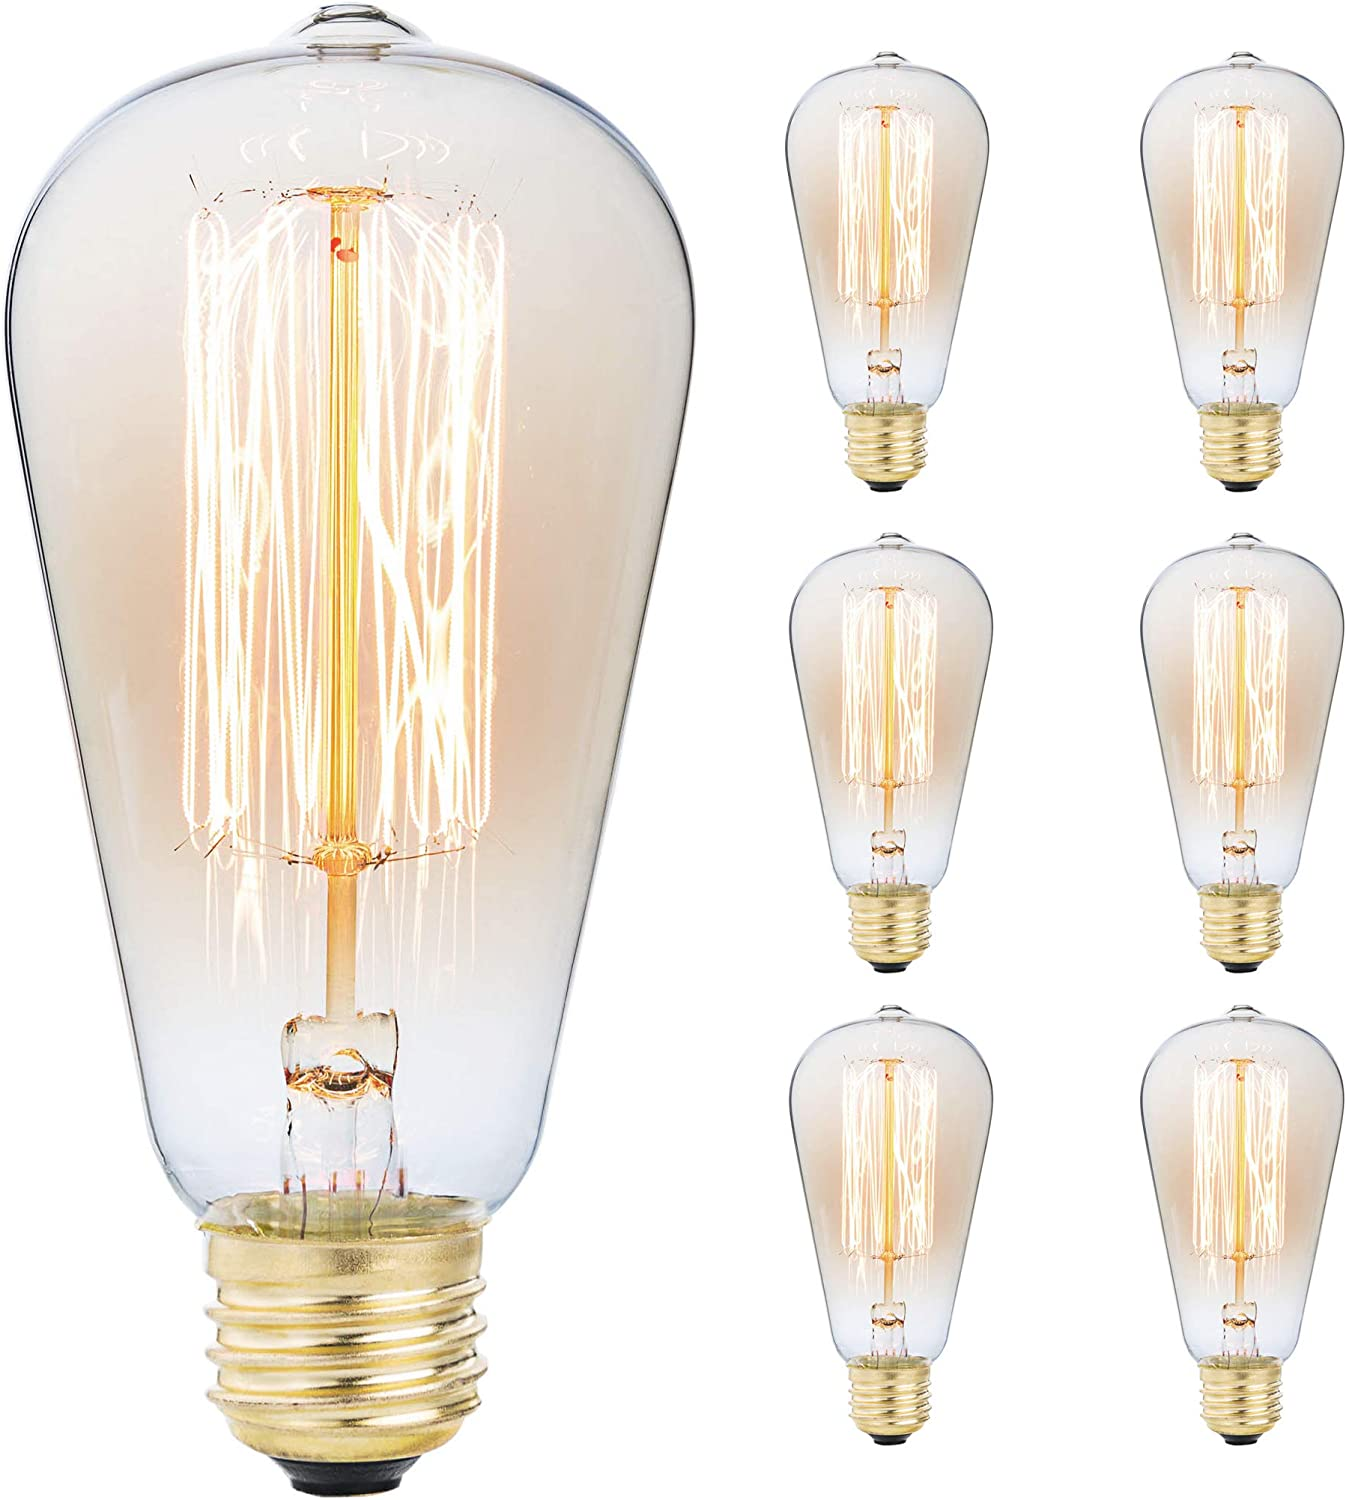 LOMT/™ 3-Pack 60W Warm Rustic Dimmable Light Bulb Squirrel Cage Filament Available in 1 3 and 6 Pack for Bar Restaurant Coffee Shop and Home Use Vintage Incandescent Edison E27 Electric Light